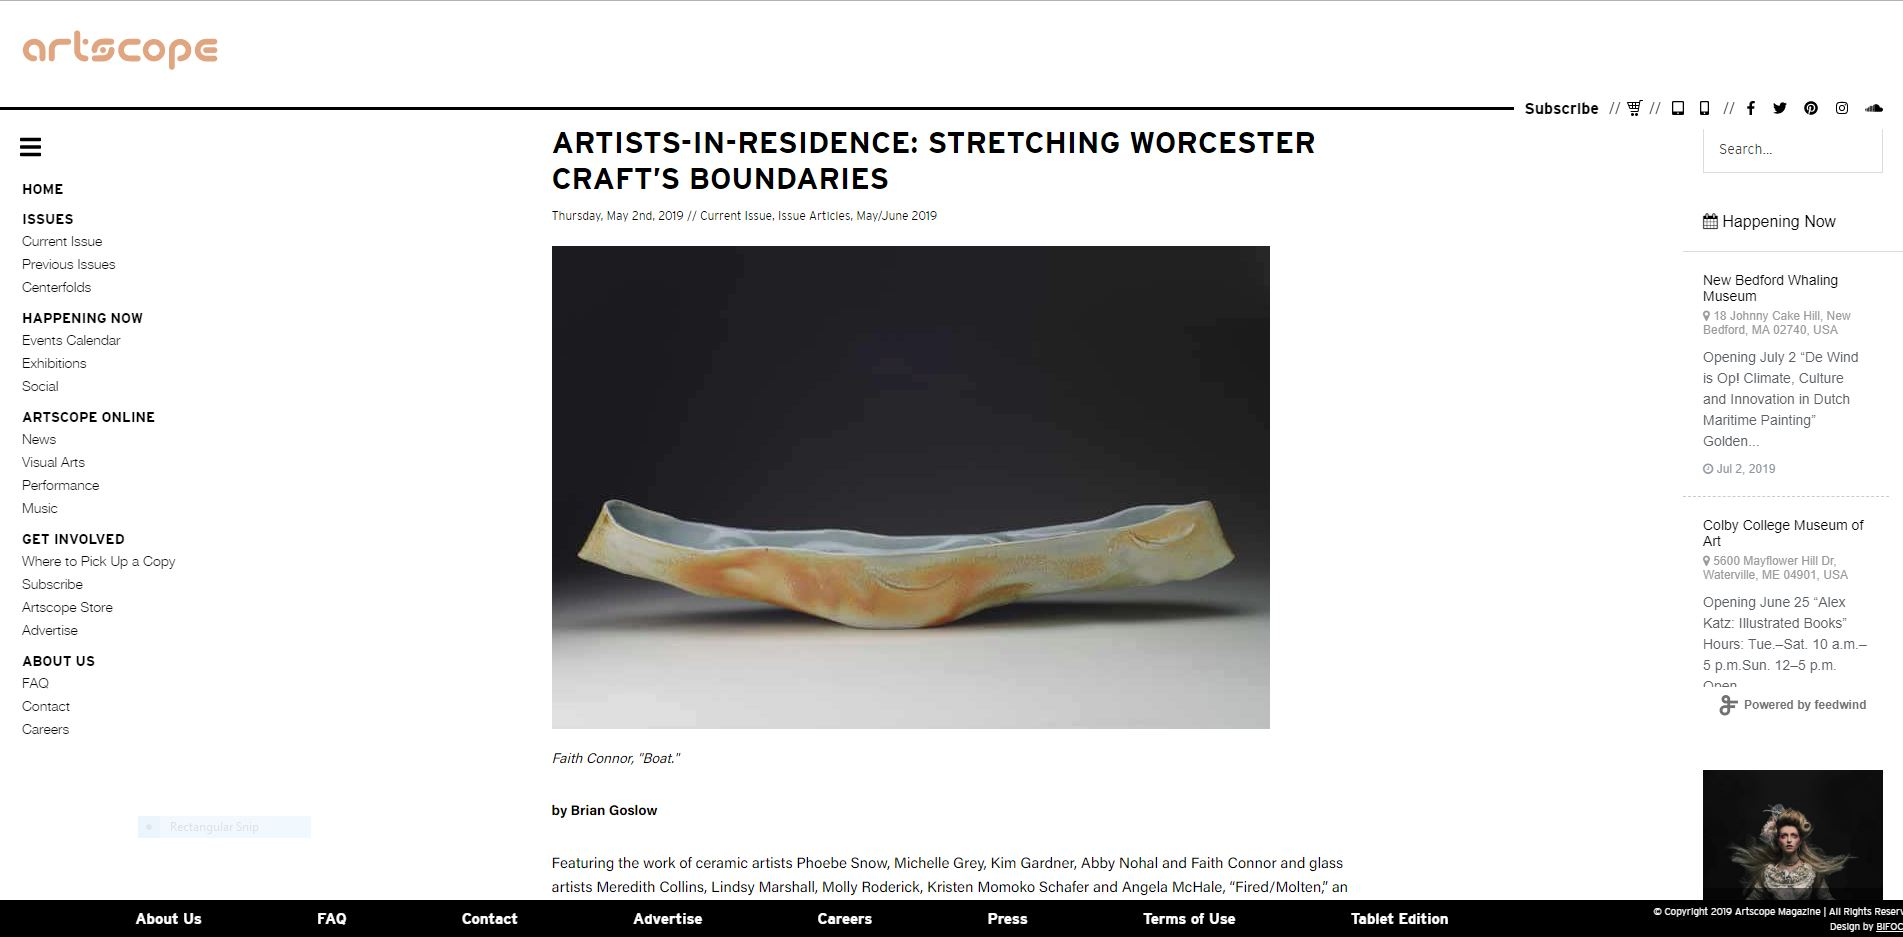 Artscope Magazine   May 2nd 2019 - Artists-in-Residence: Stretching Worcester Craft's Boundaries, May/June 2019 Issue